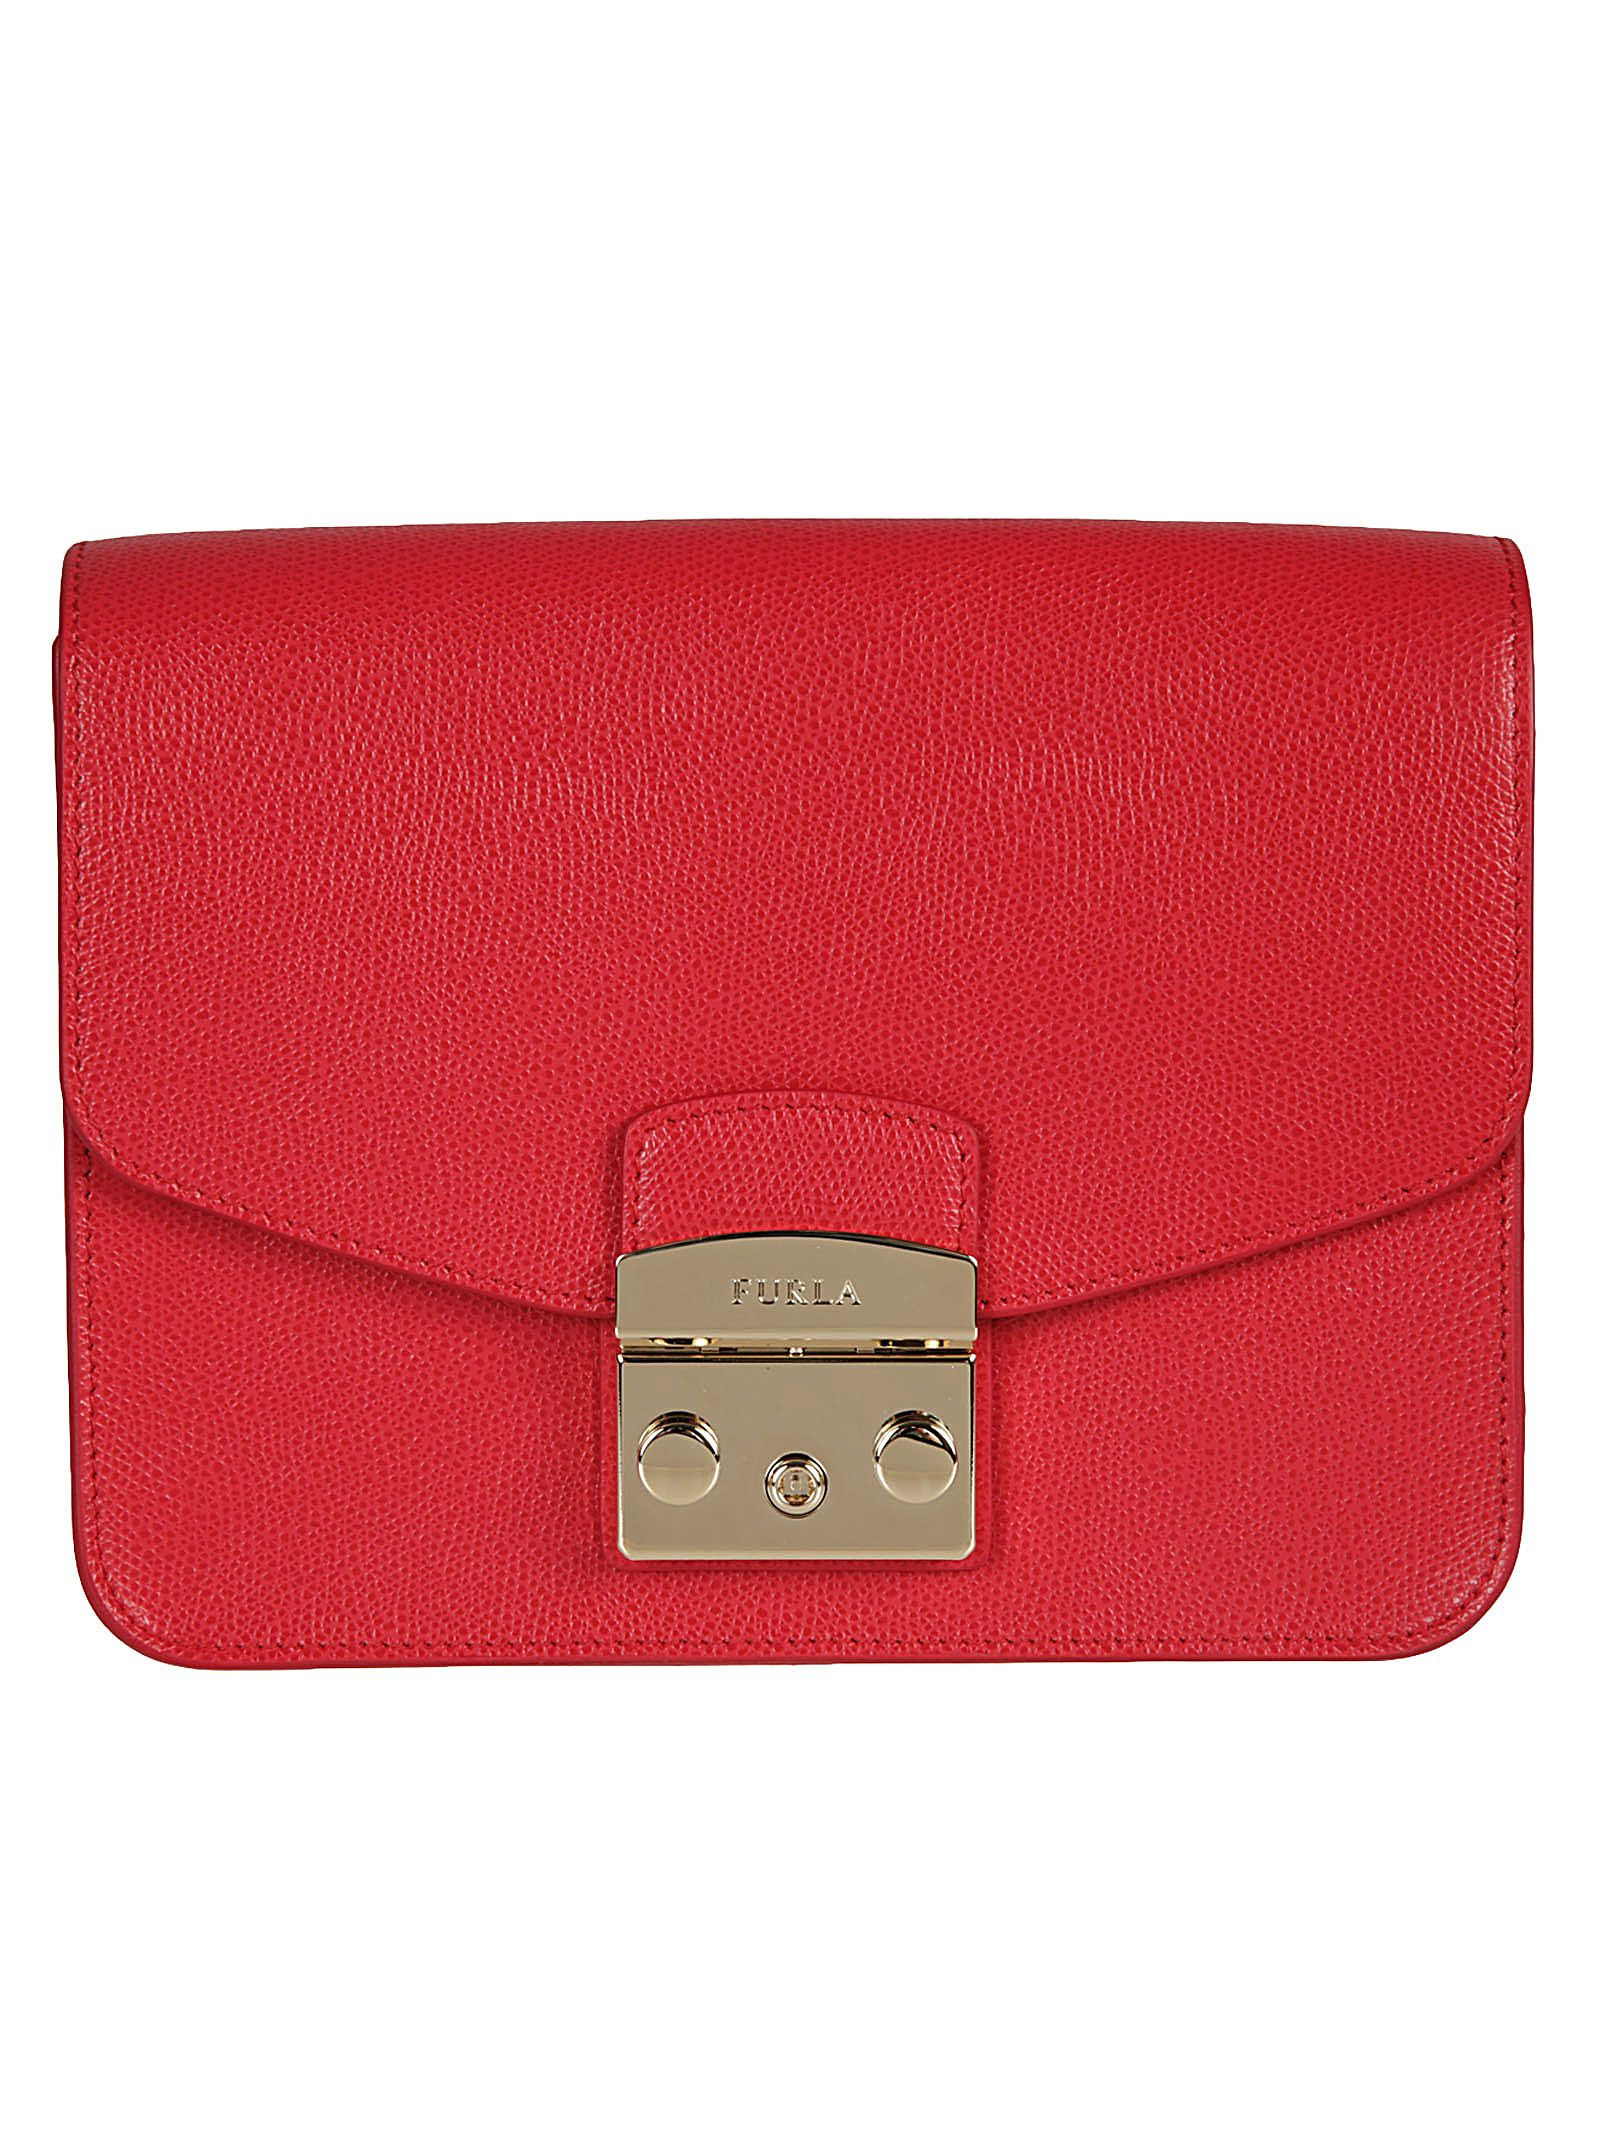 Furla Clutch Bag On Sale, Ruby, Leather, 2017, one size